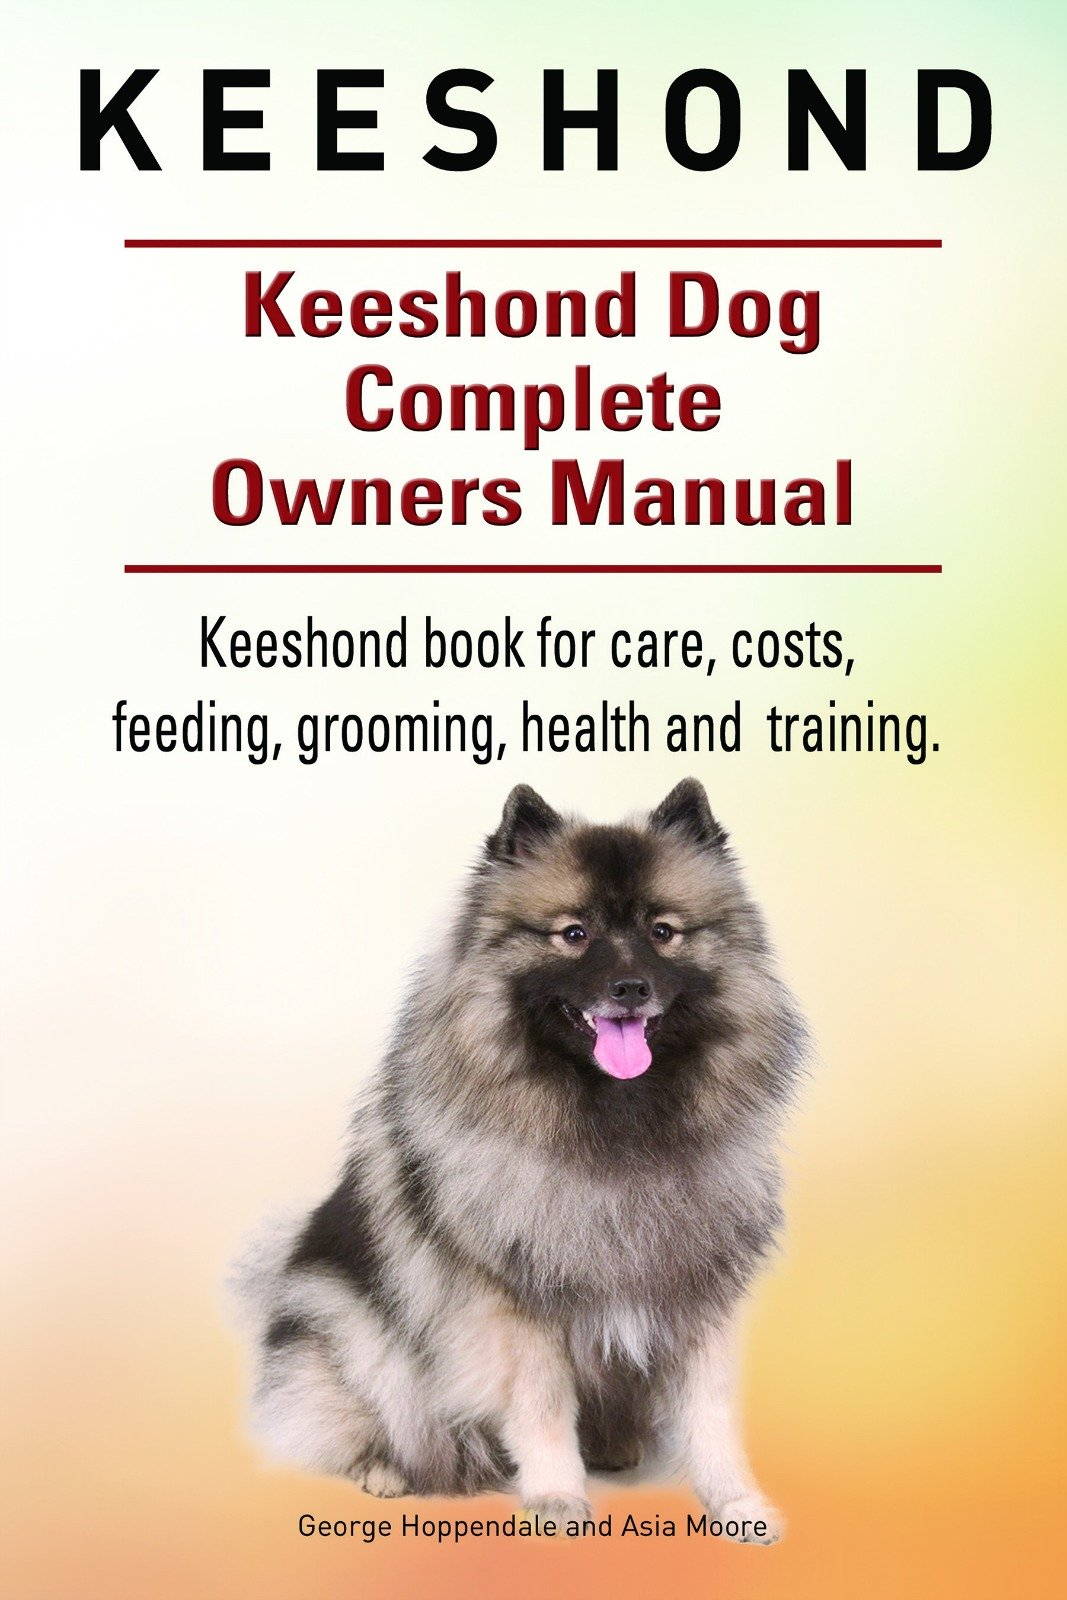 Keeshond Dog.  Keeshond dog book for care, costs, feeding, grooming, health and training.  Keeshond dog Owners Manual. 1